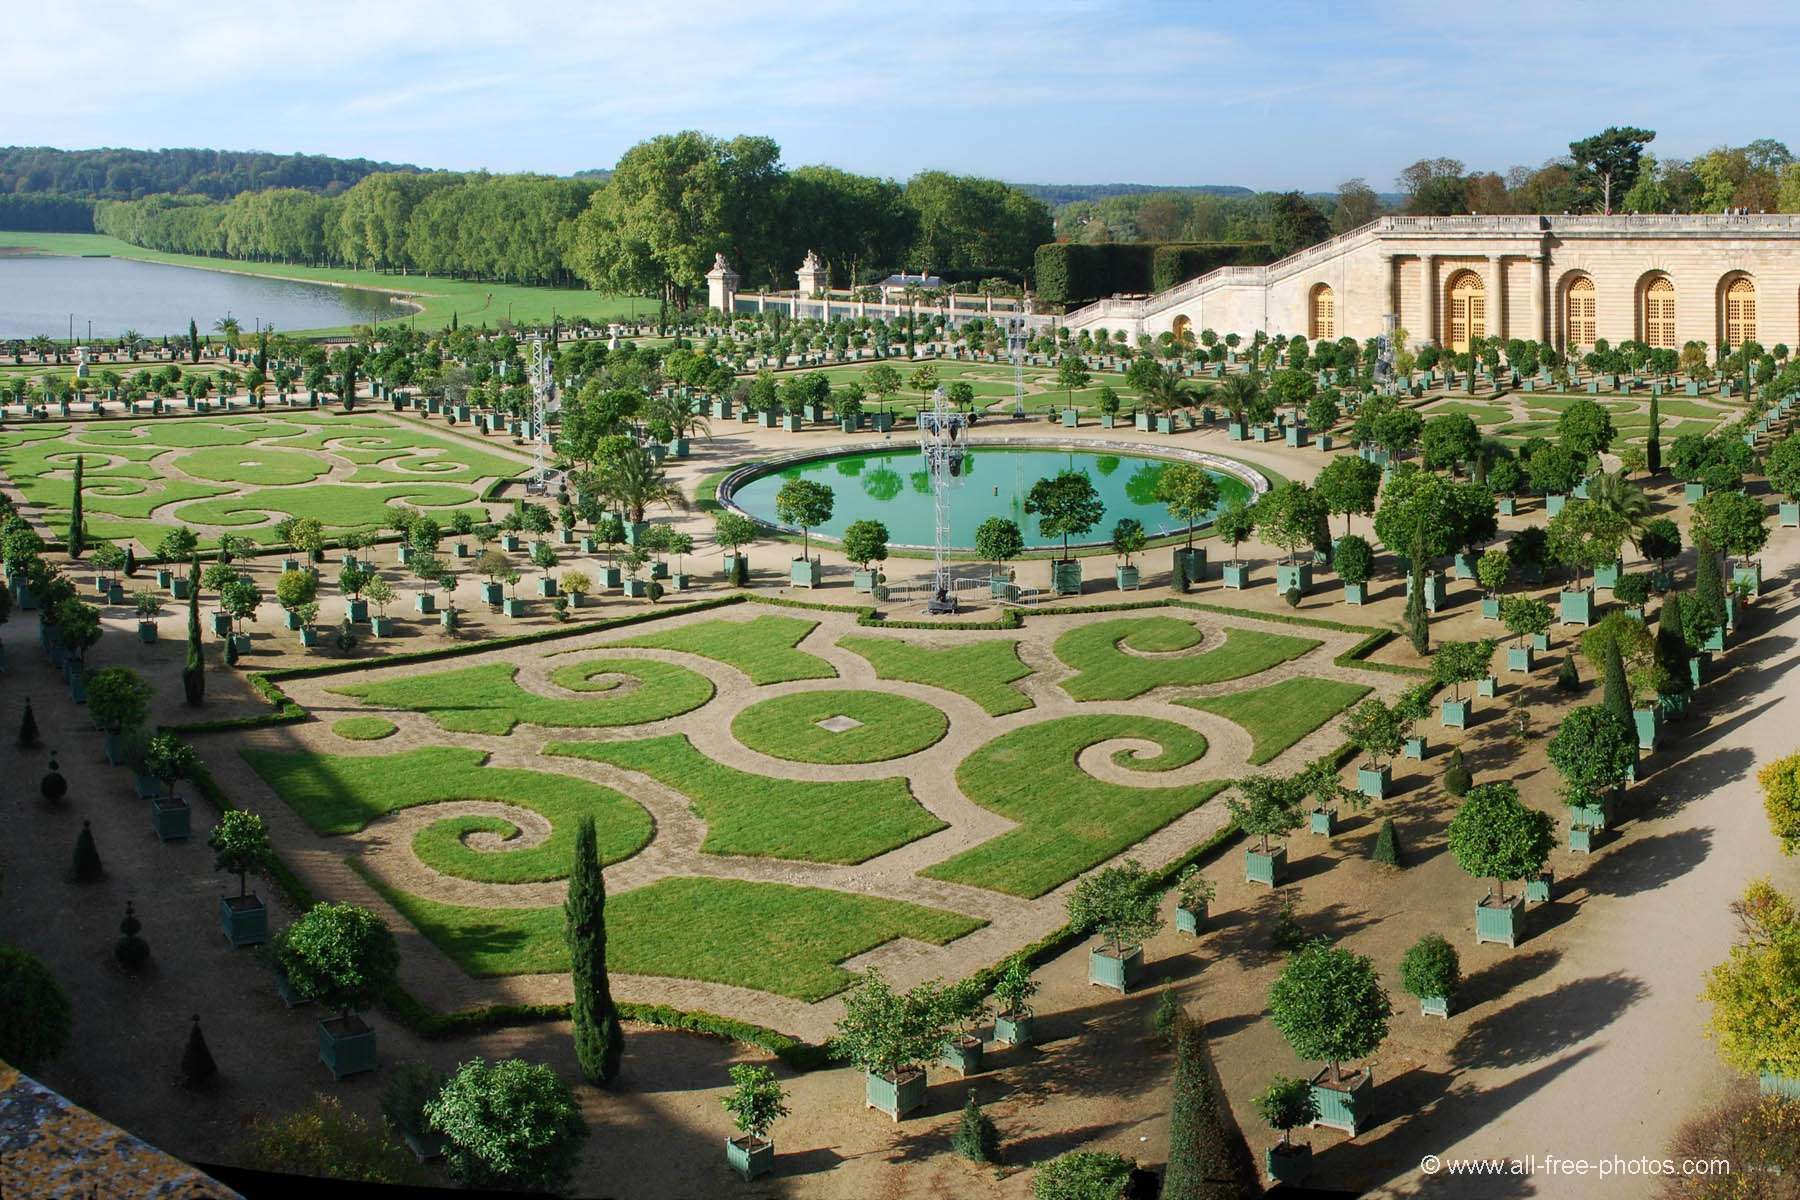 The OrangeryChateau at Versailles Most beautiful